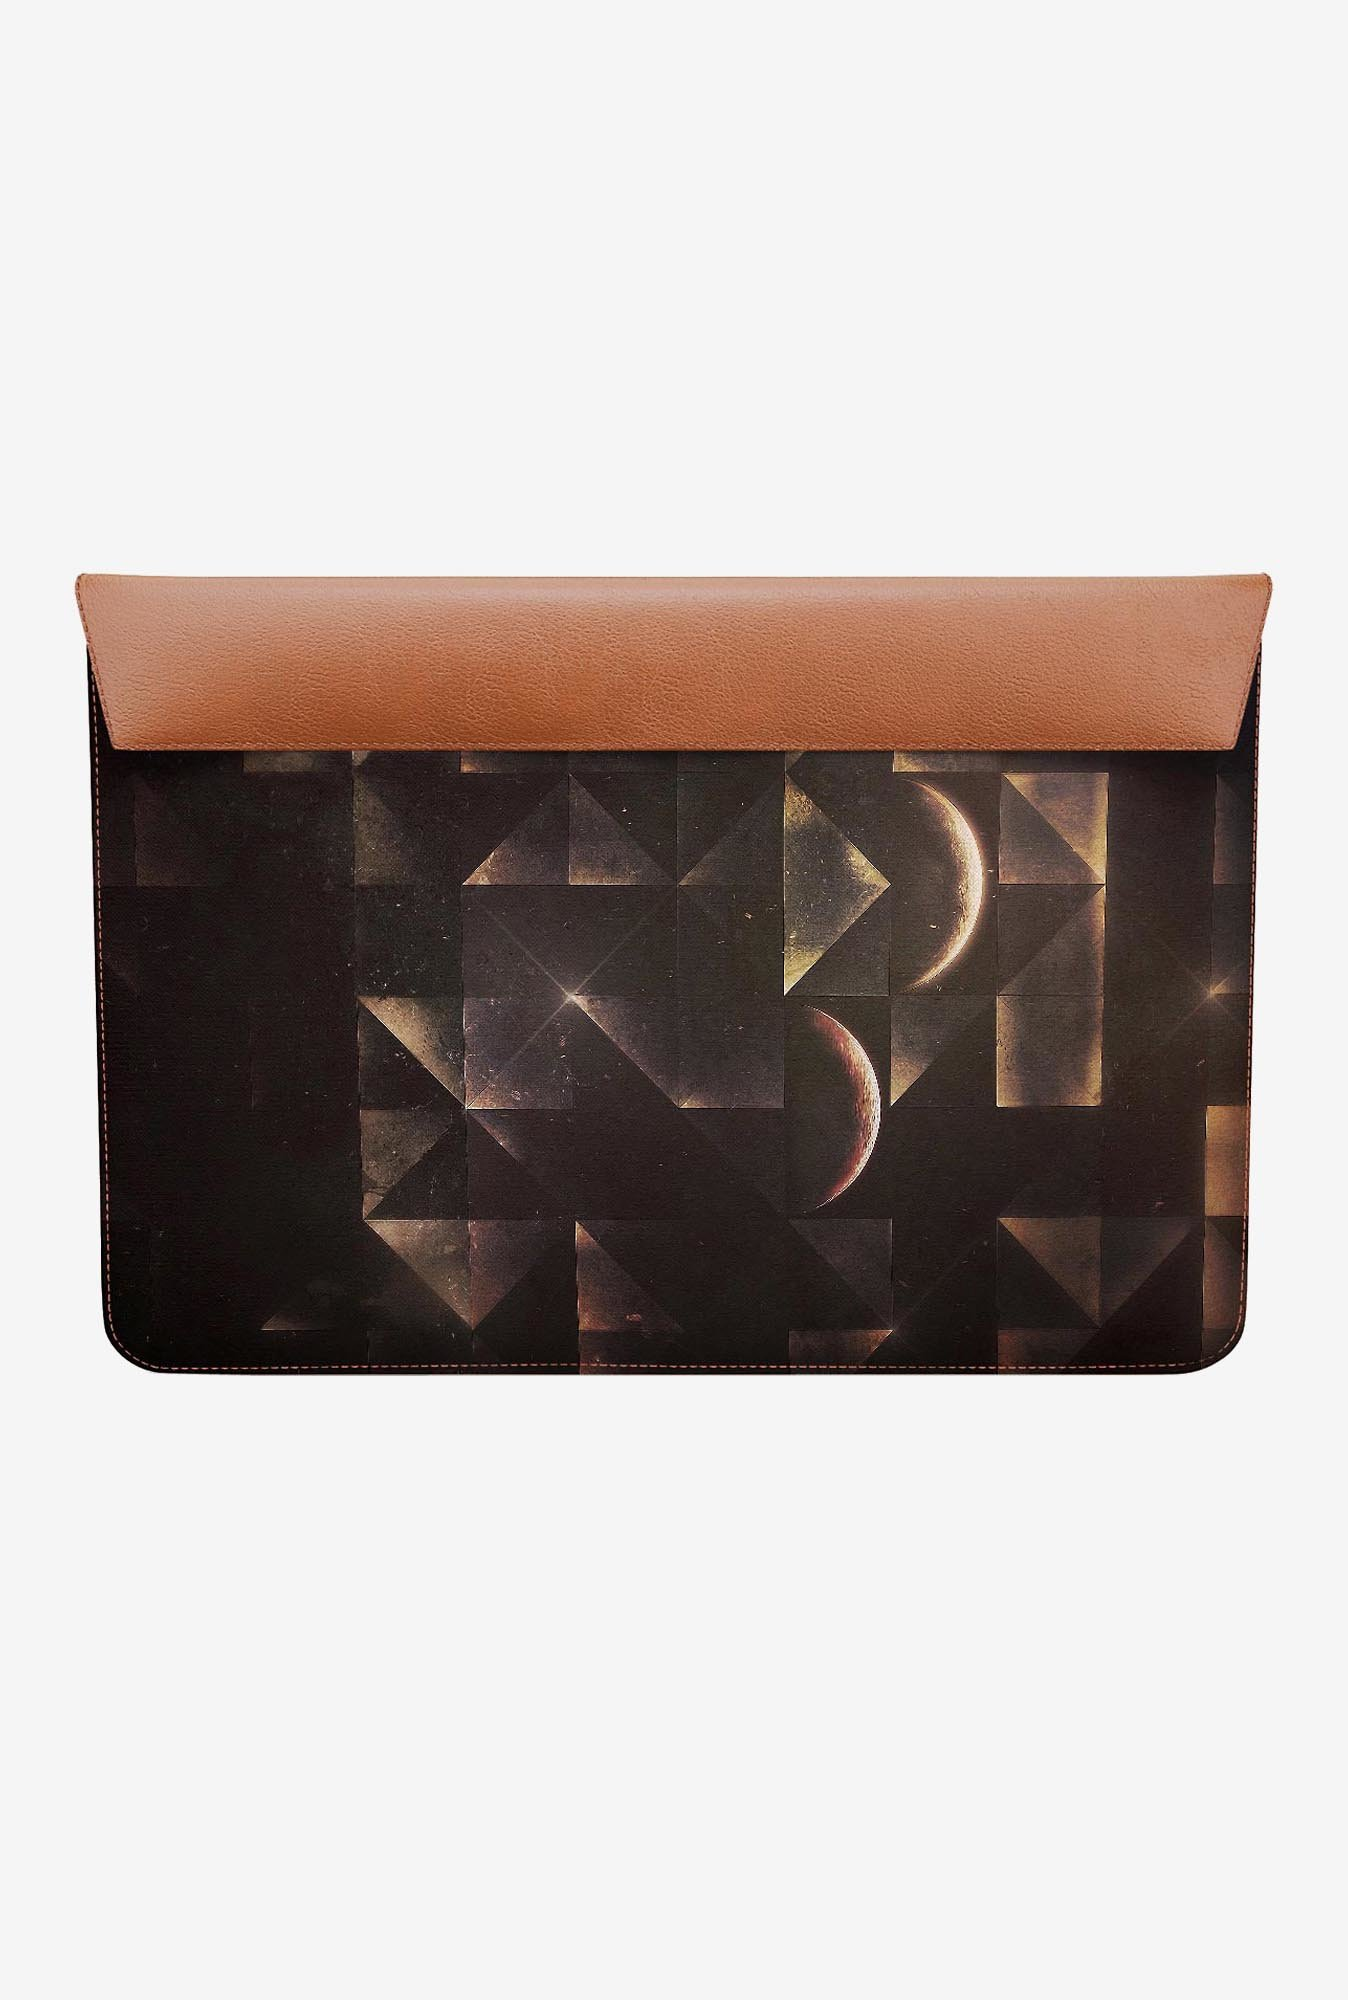 "DailyObjects Styr Byrn Macbook Air 11"" Envelope Sleeve"